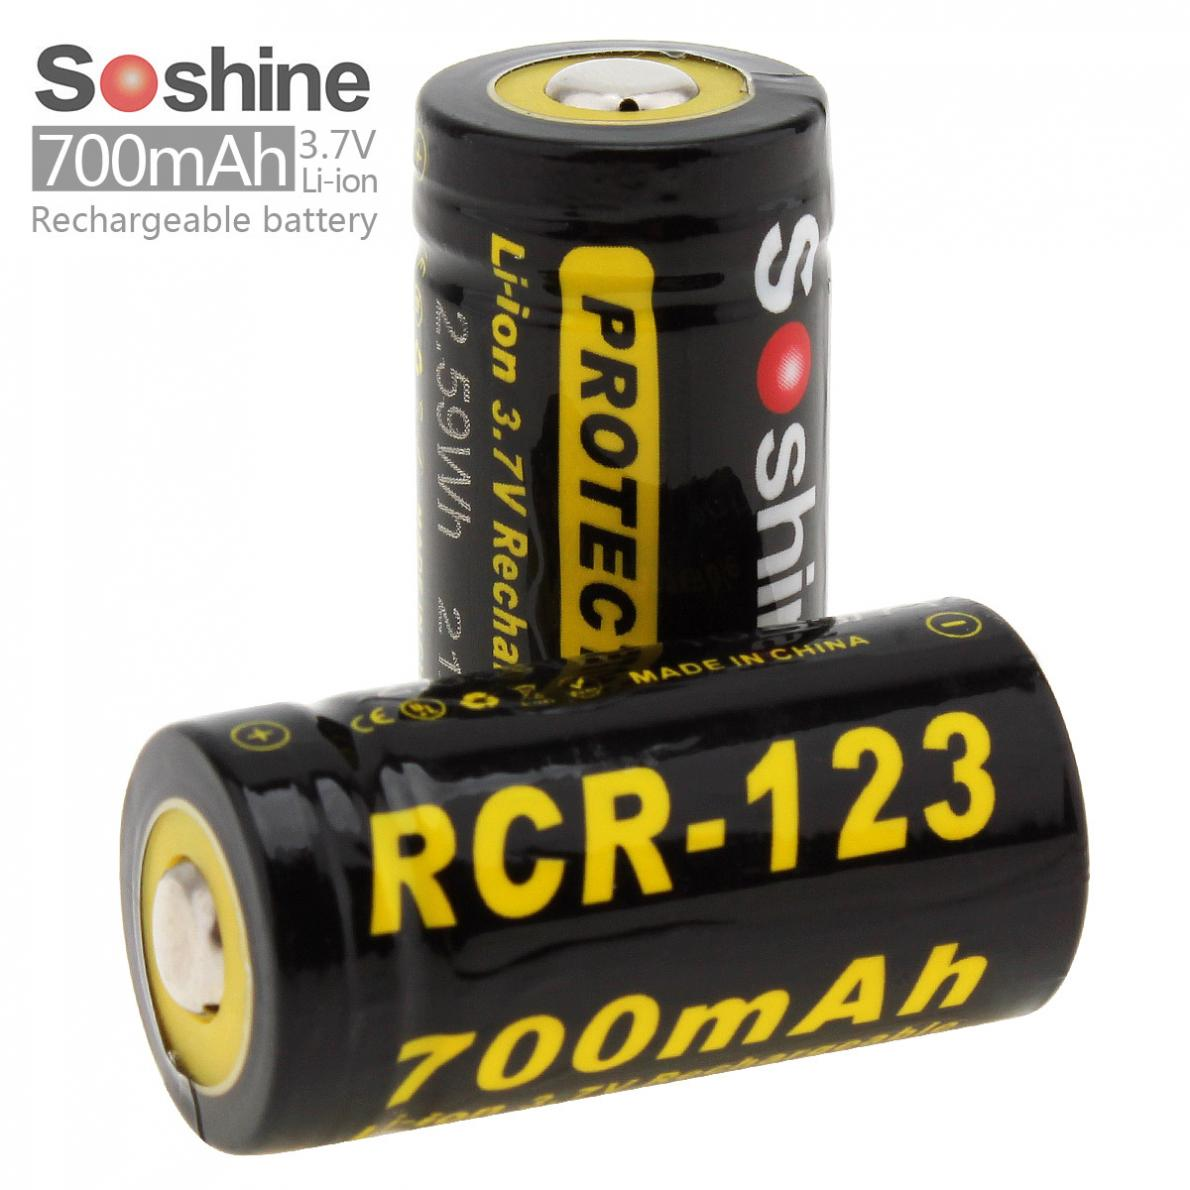 Soshine <font><b>Li</b></font>-<font><b>ion</b></font> RCR 123 3.7V <font><b>16340</b></font> 700mAh Protected Rechargeable Lithium <font><b>Battery</b></font> (2 Pcs) with <font><b>Battery</b></font> Case image